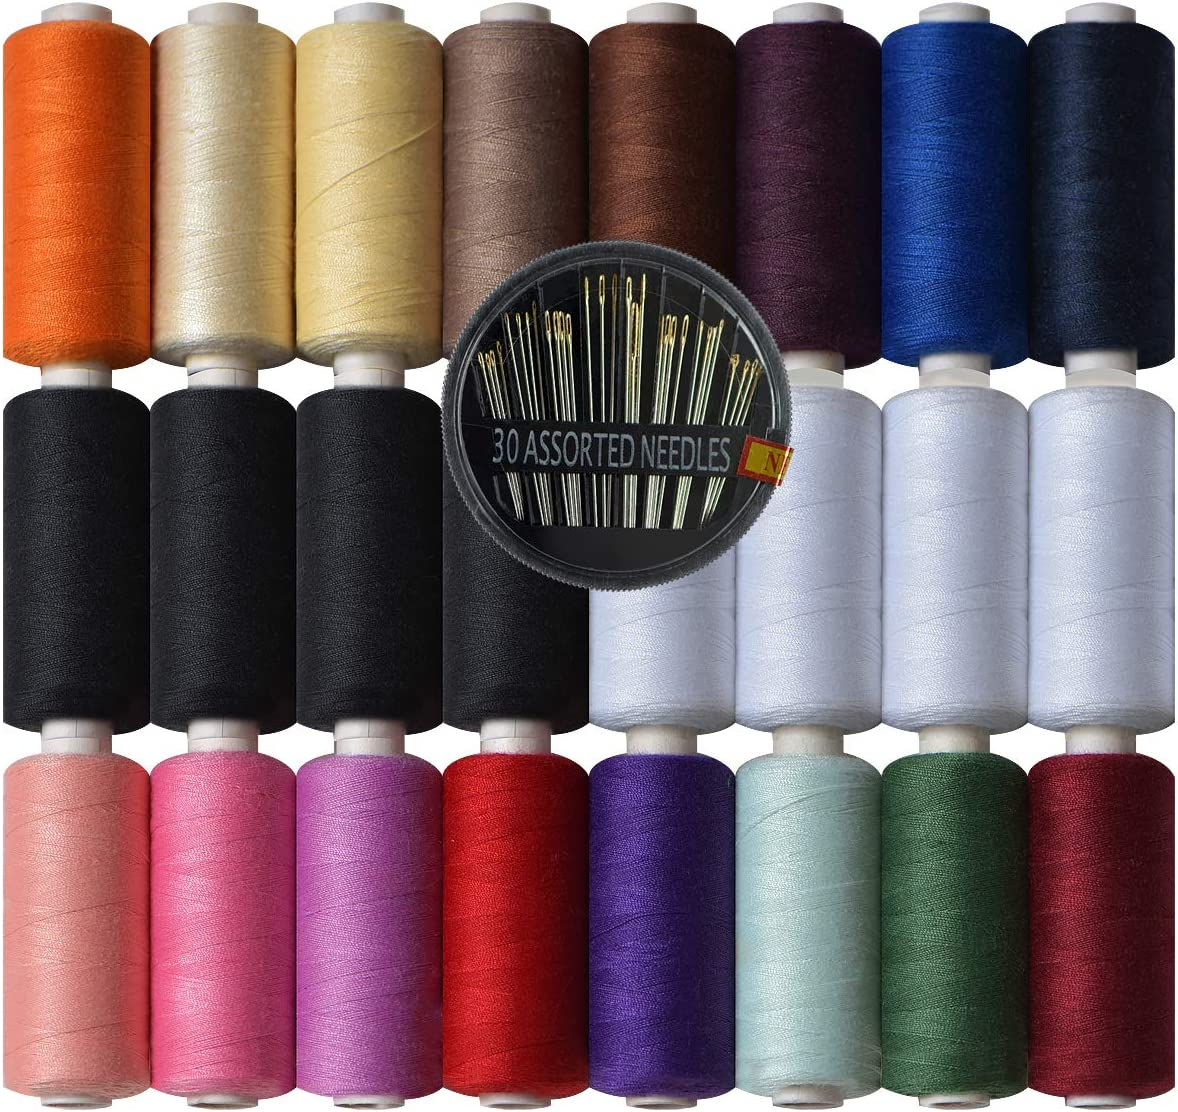 sold out Polyester Sewing Thread-24 Spools A Purpose Thread All SEAL limited product